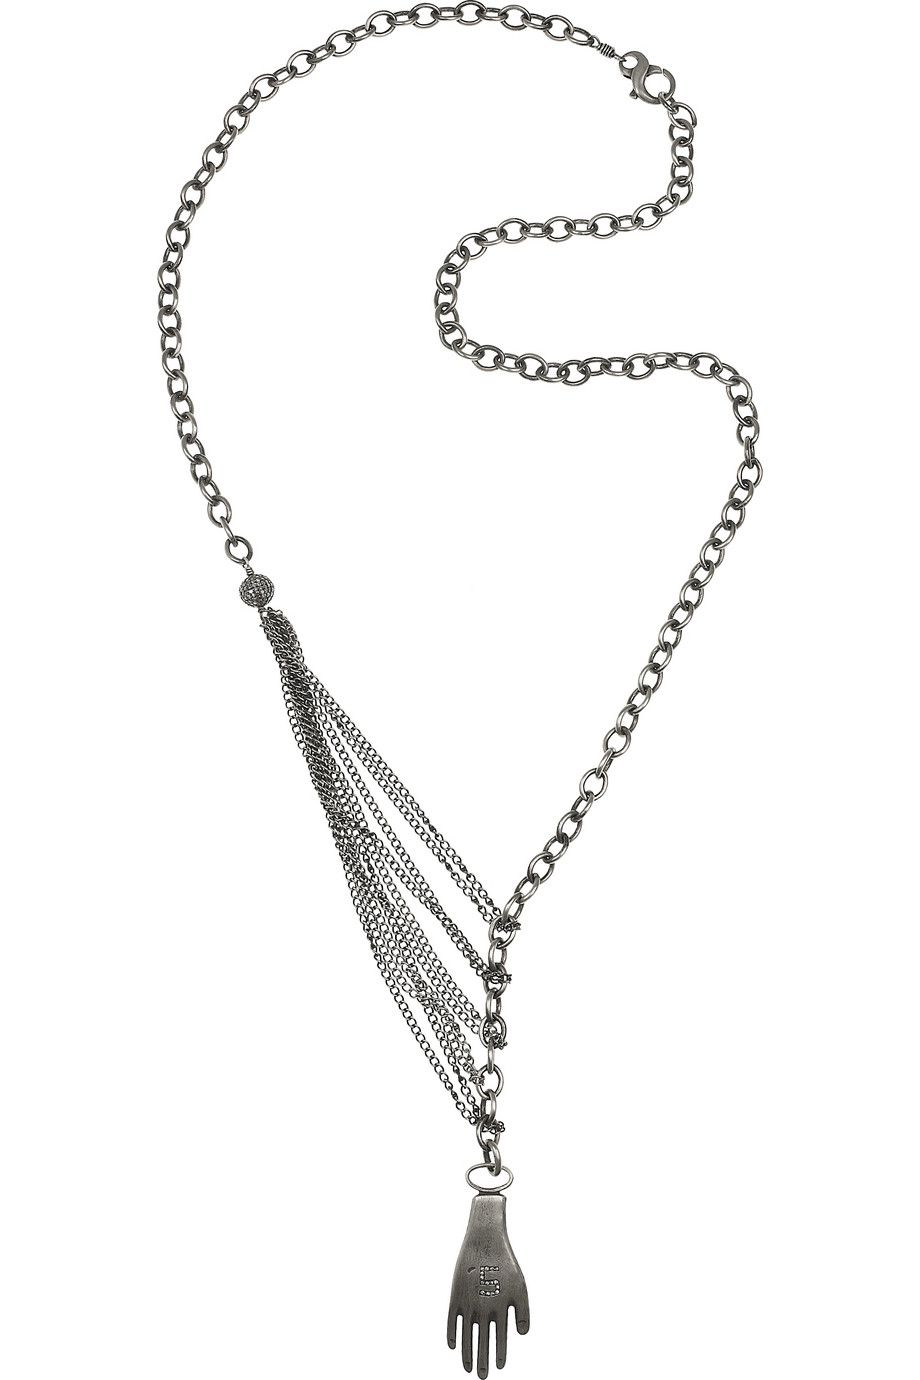 Irit Design Oxidised Sterling Silver Chain Necklace 174 ct